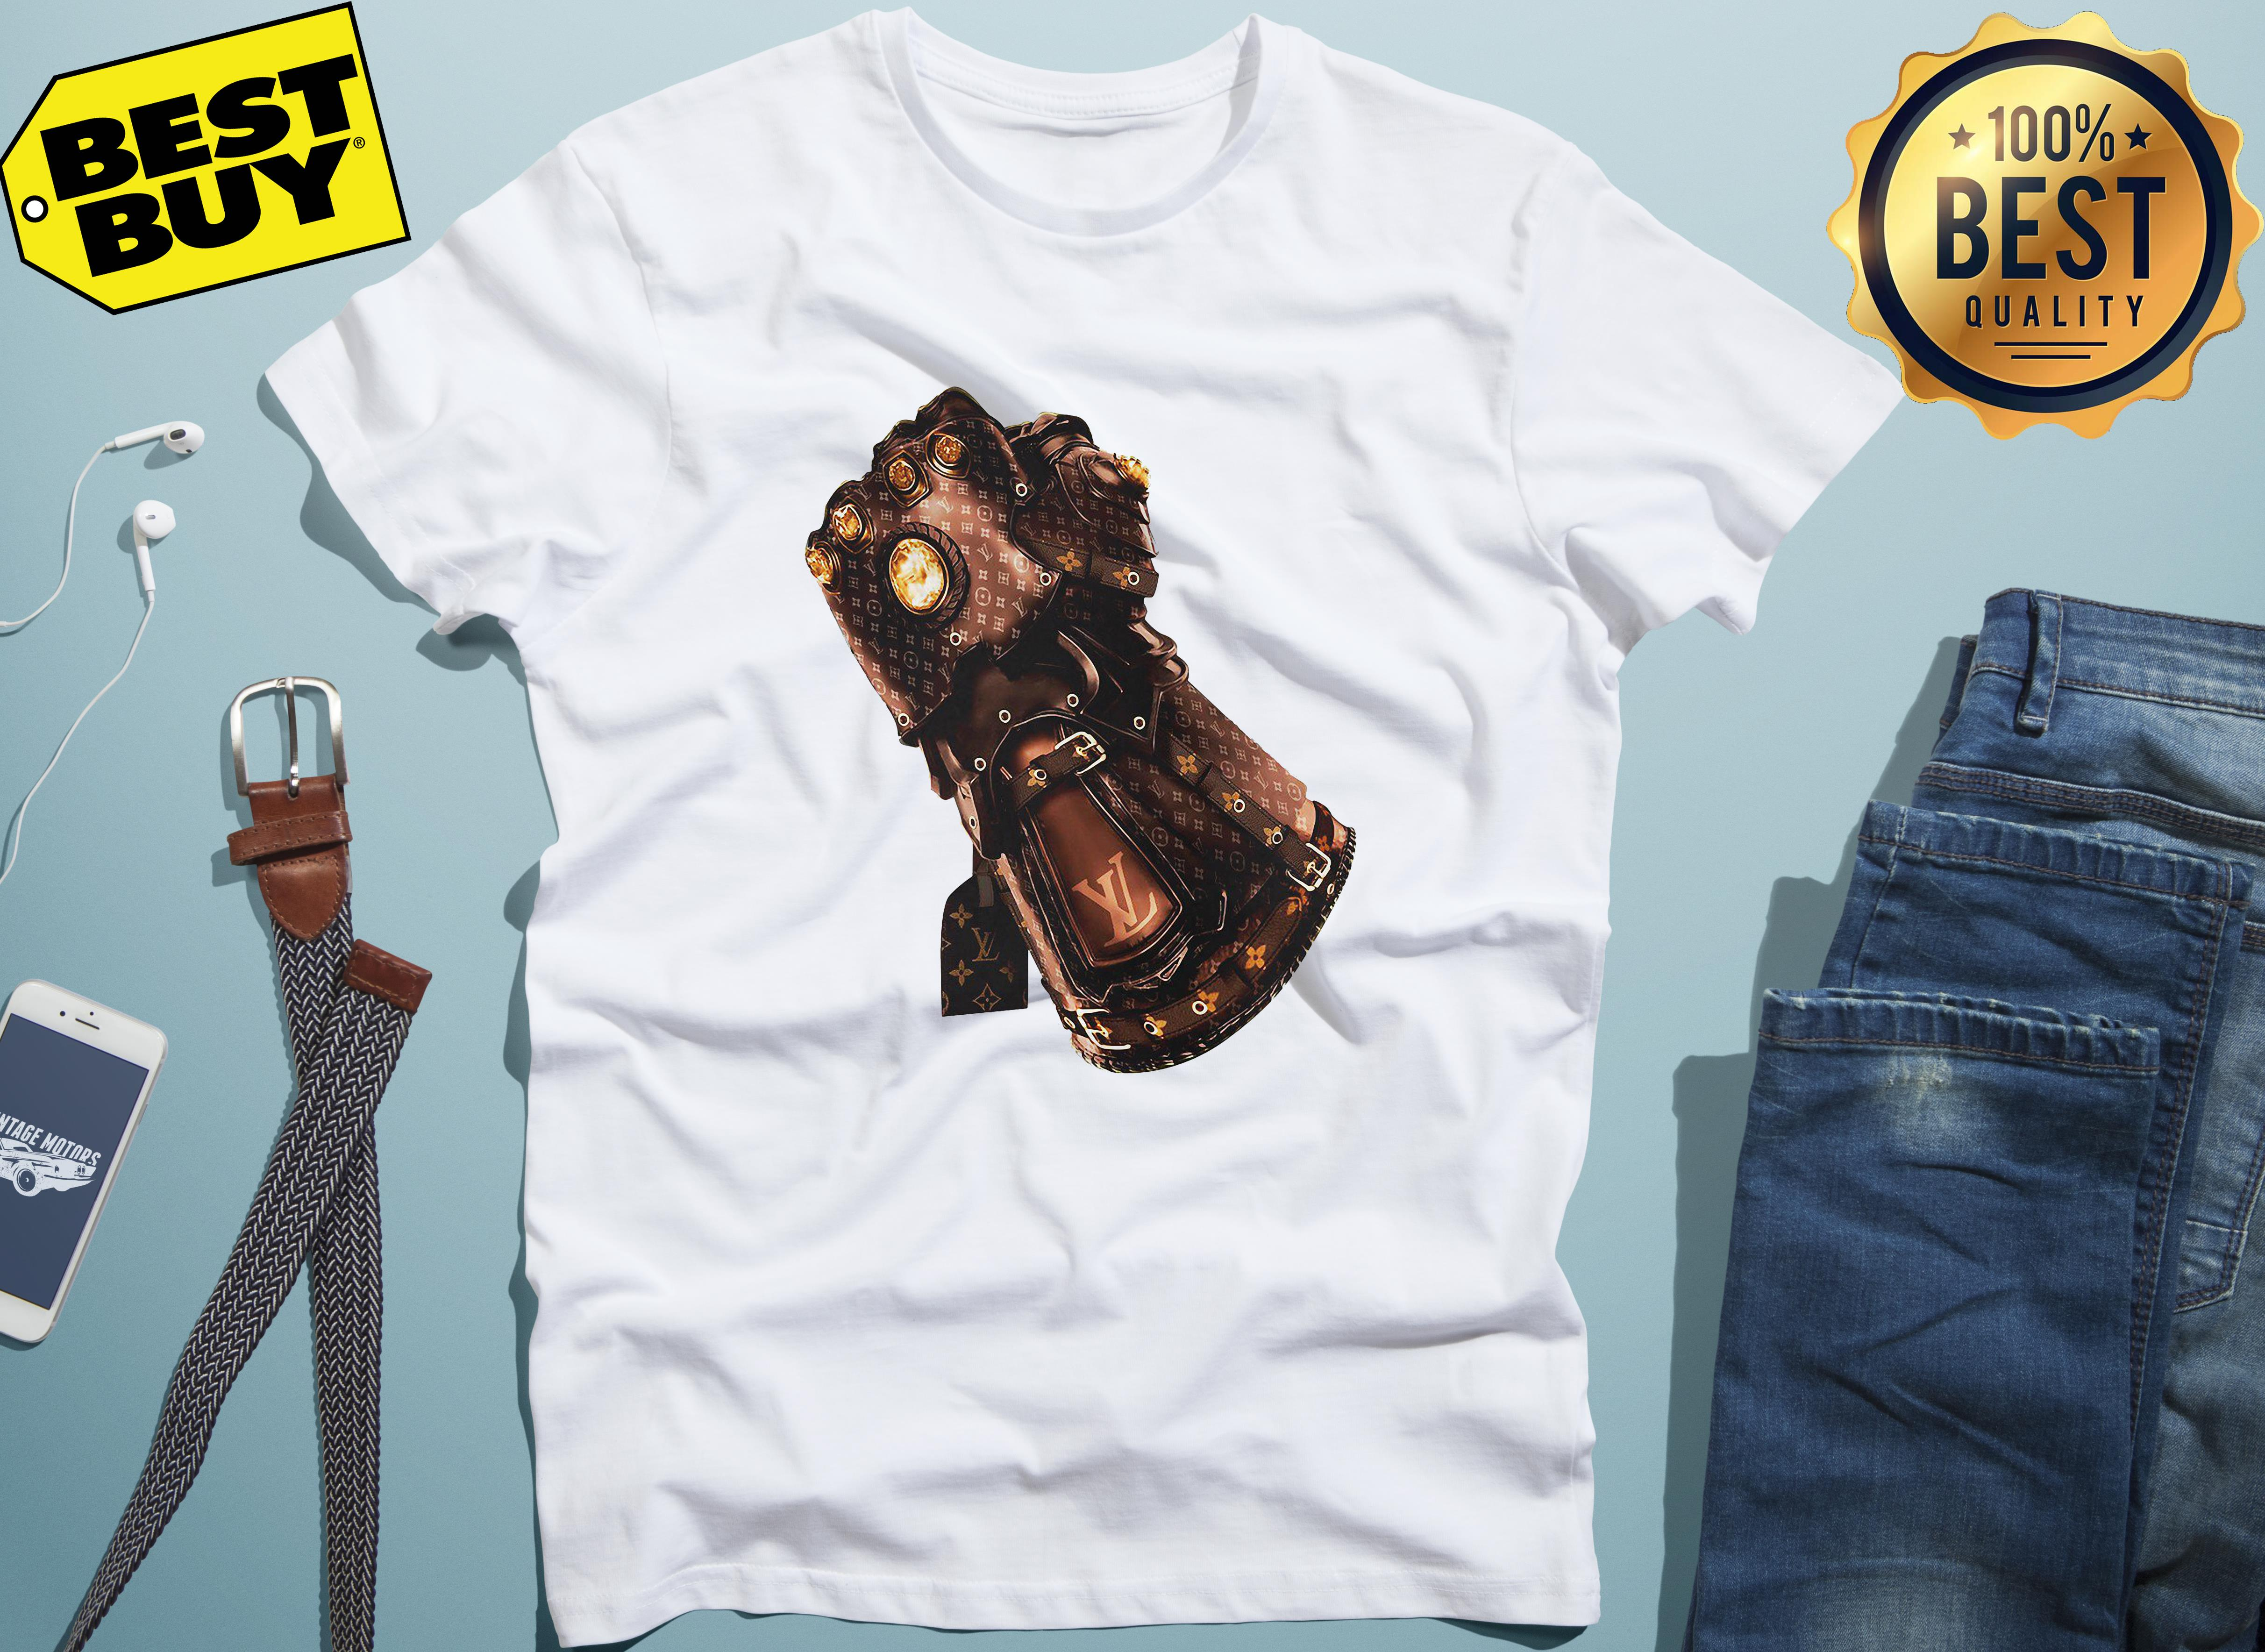 Thanos Vs Iron Man Avengers Endgame Gauntlet X Louis Vuitton hoodie